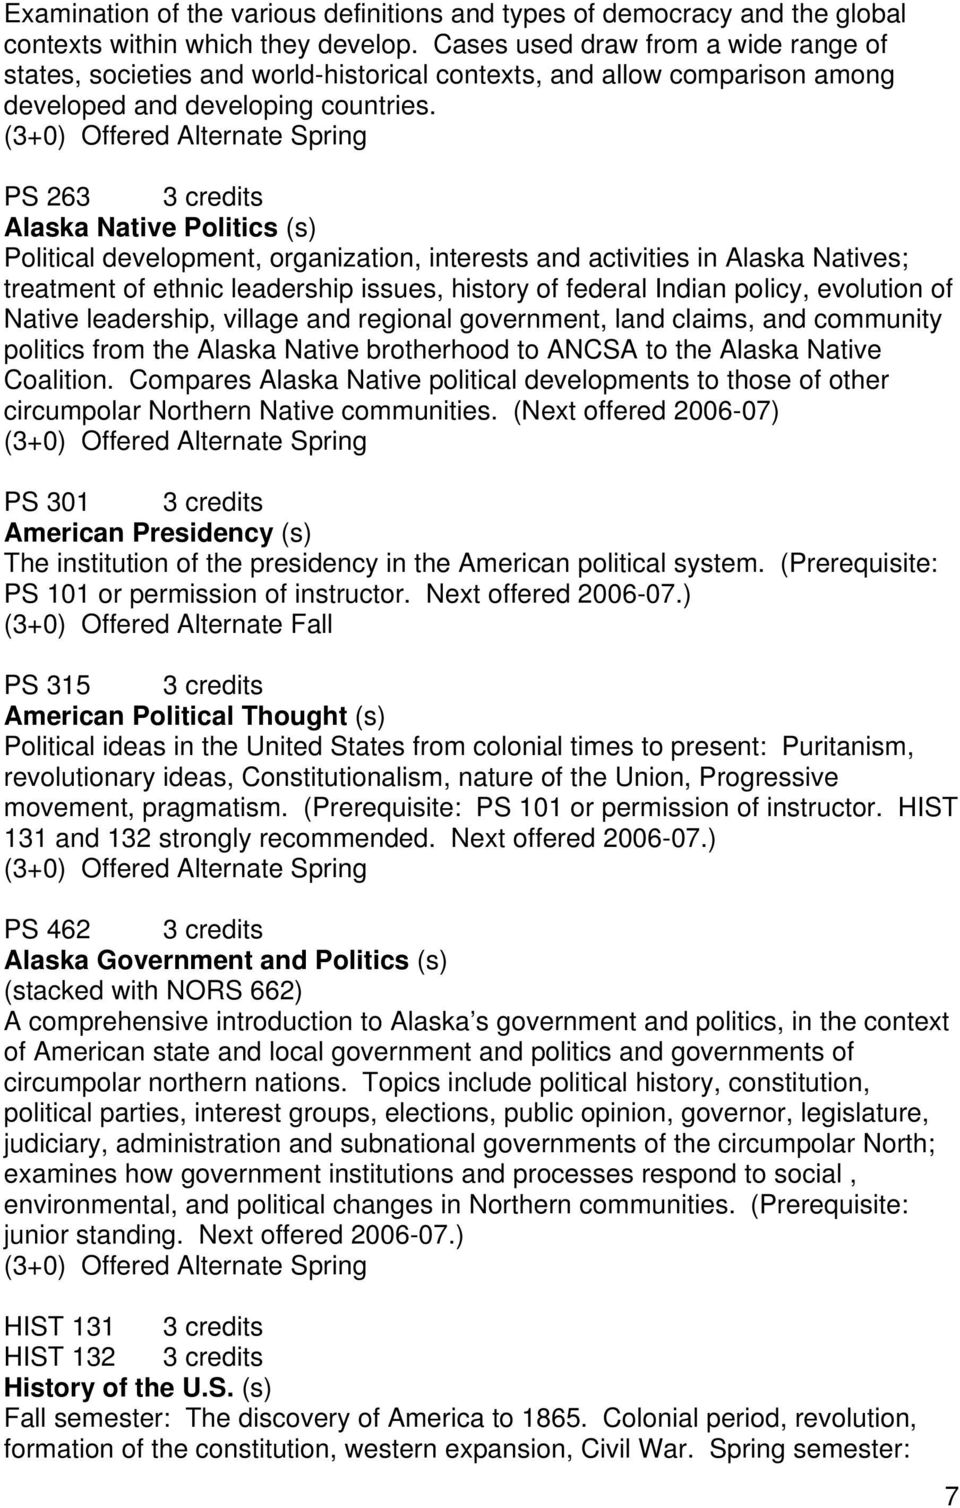 (3+0) Offered Alternate Spring PS 263 3 credits Alaska Native Politics (s) Political development, organization, interests and activities in Alaska Natives; treatment of ethnic leadership issues,